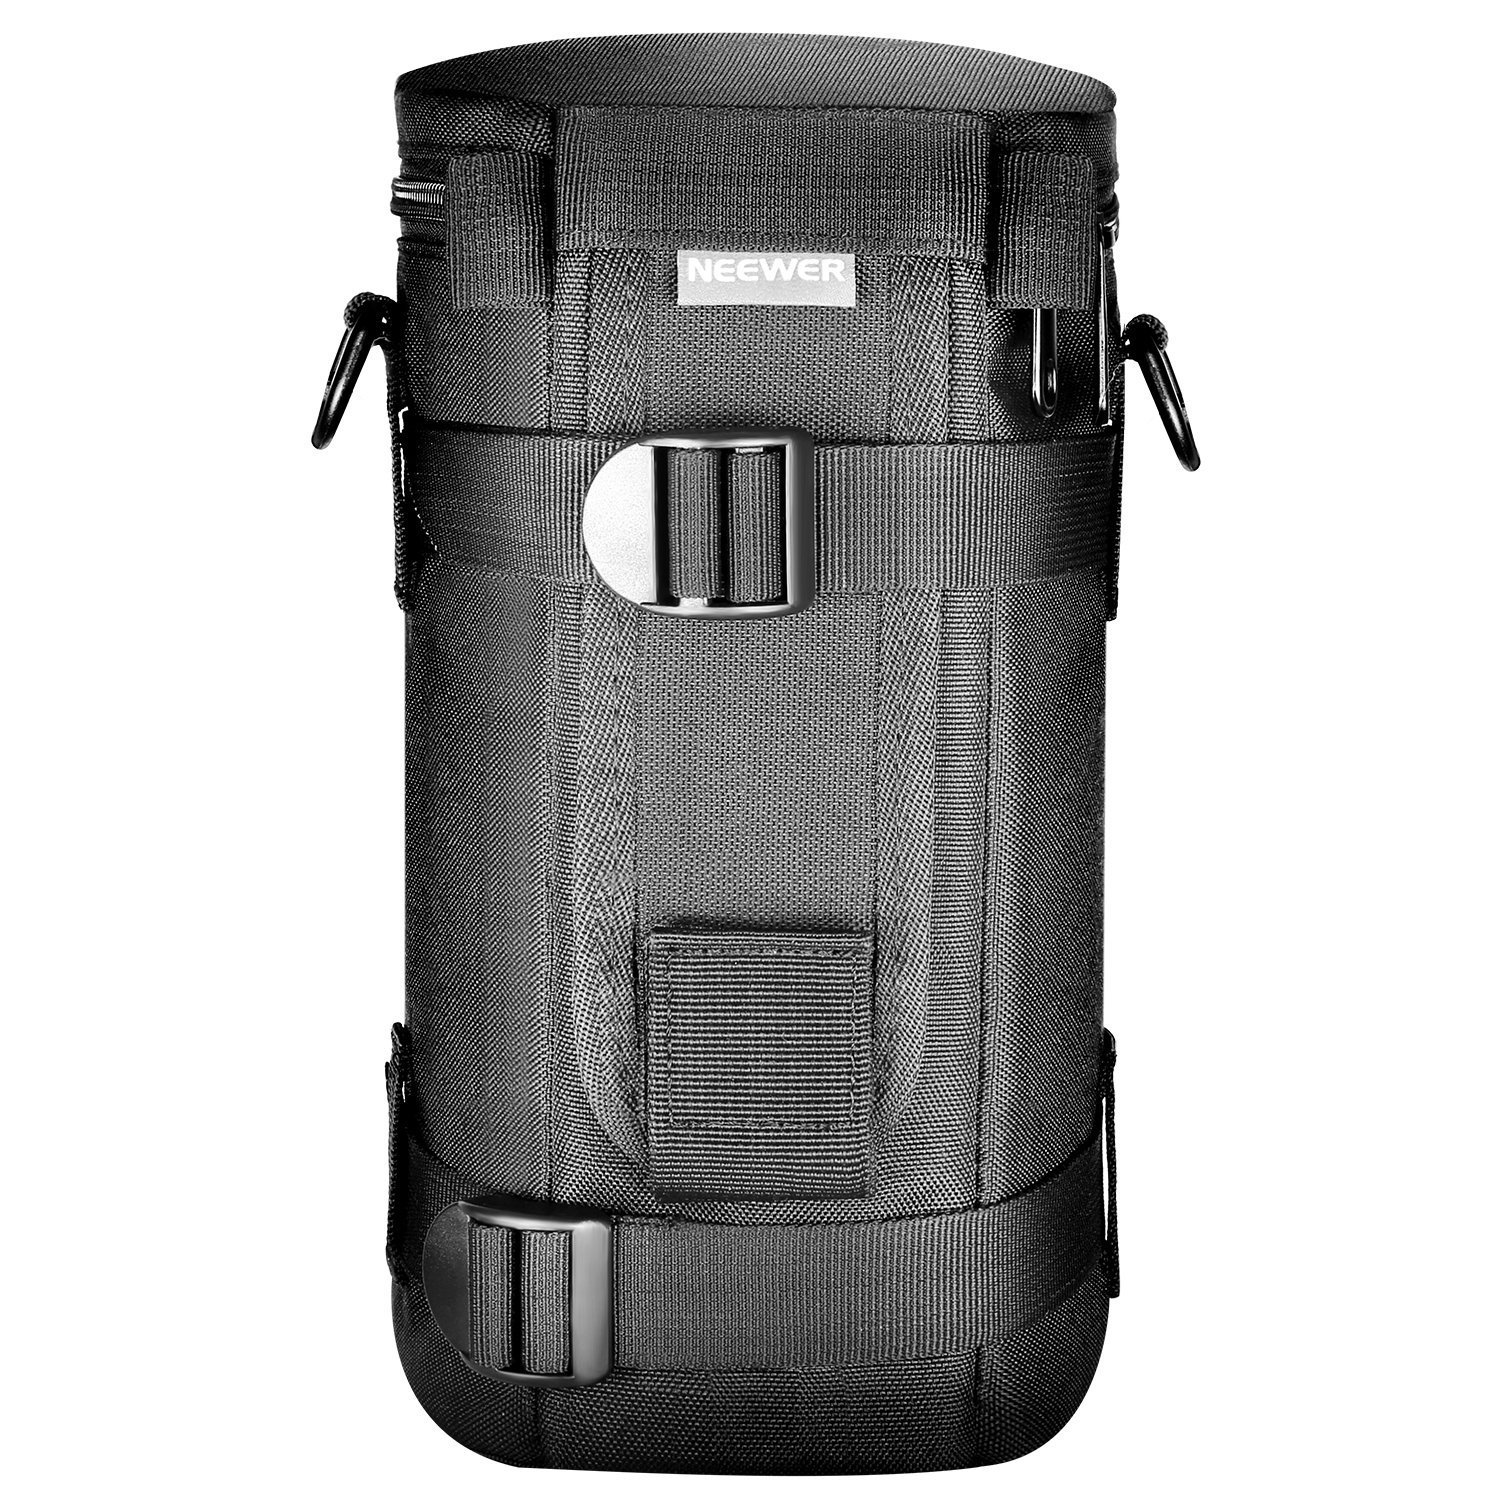 Neewer NW-L2070 Black Padded Water-Resistant Lens Pouch Bag Case with Shoulder Strap for 70-200mm Lens, Such as Canon 70-200/2.8IS, 100-400, 180mm / Nikon 70-200, 80-400, 180-2.8 by Neewer